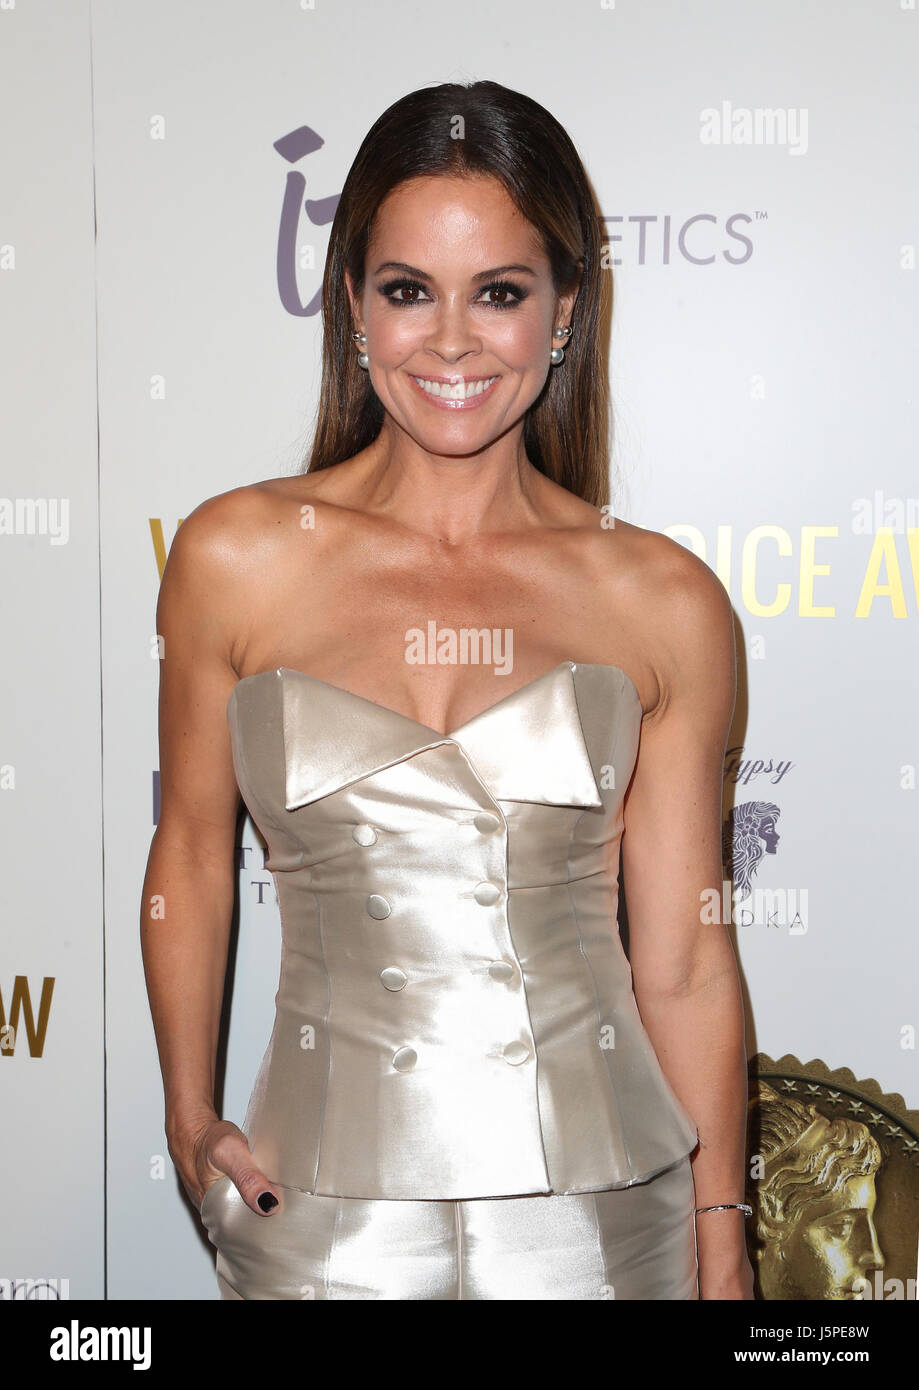 David charvet hairstyles for 2017 celebrity hairstyles by - Brooke Burke Charvet At 2017